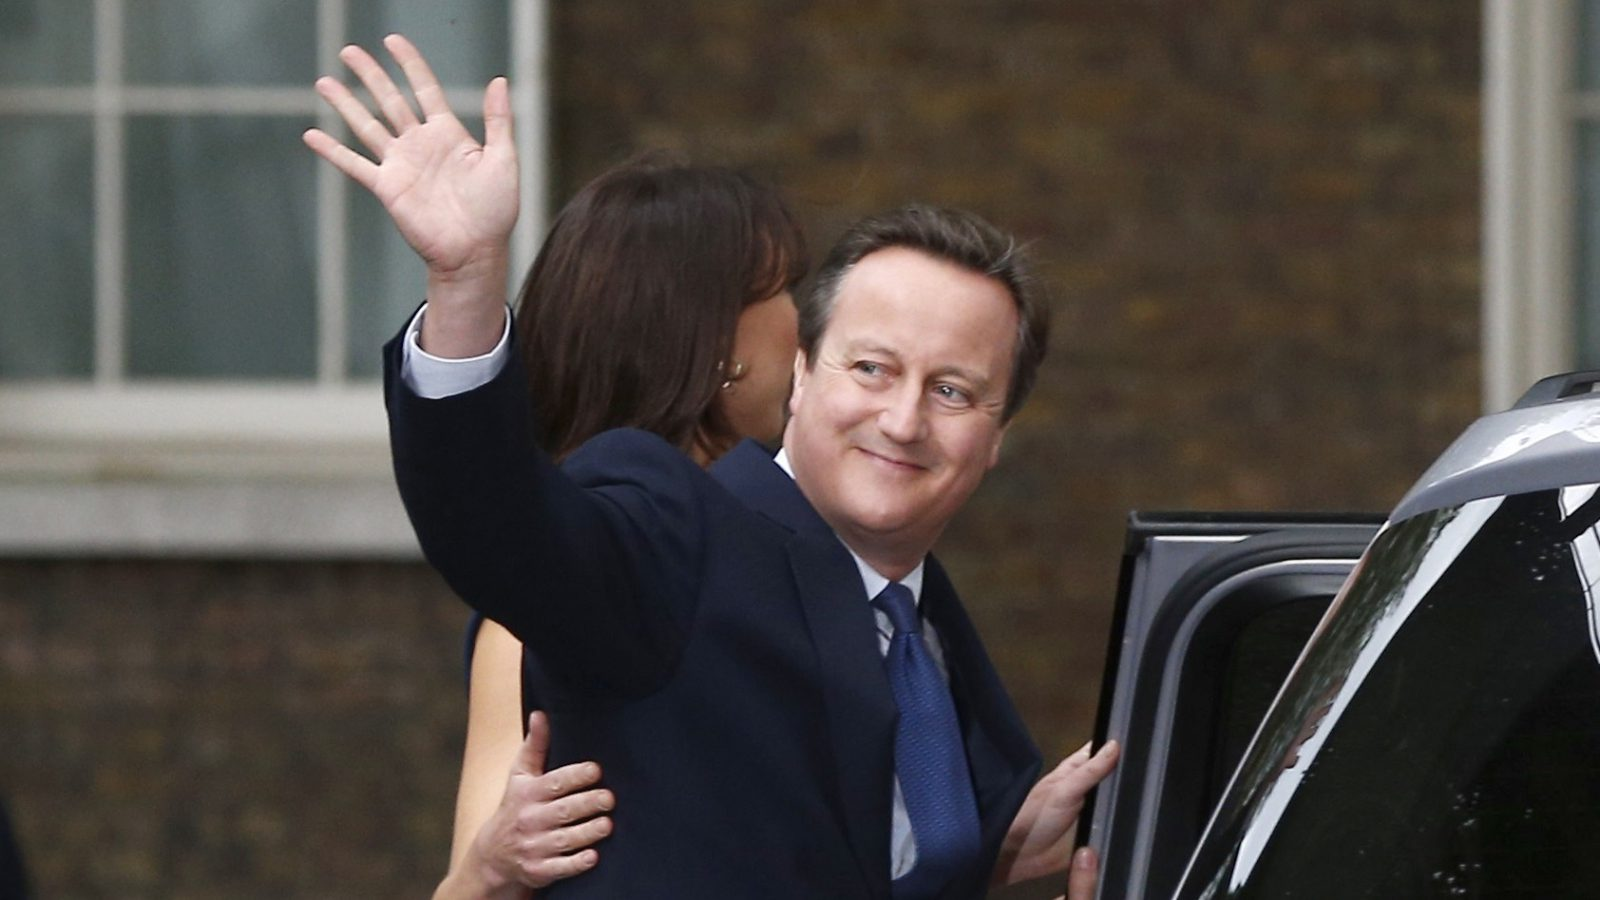 David Cameron waves.